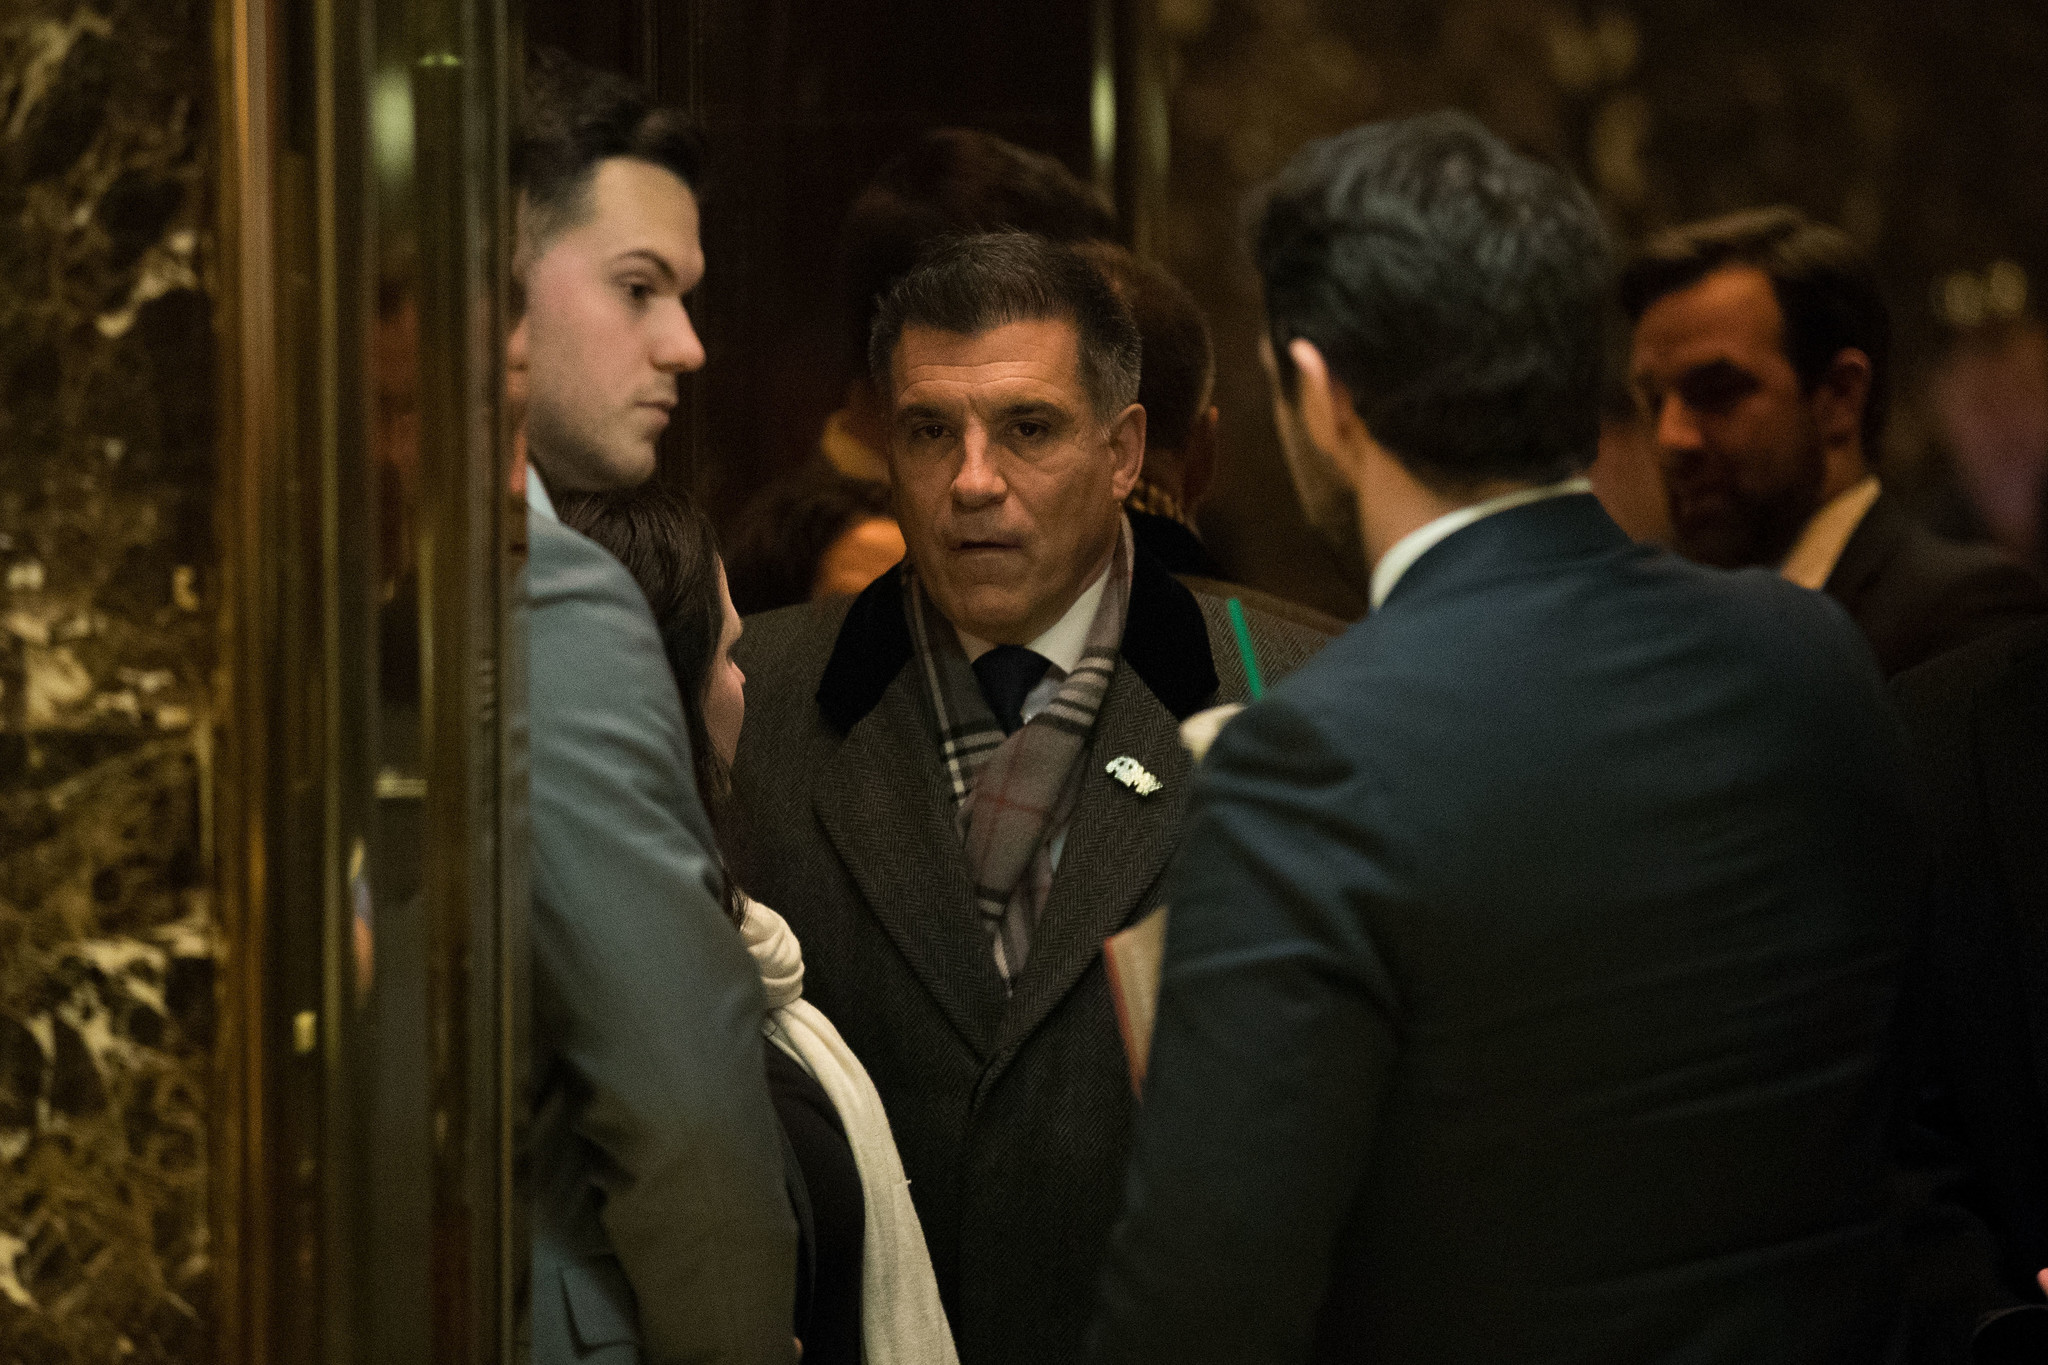 Sfl-secretary-of-war-nominee-vincent-viola-panthers-owner-accused-of-punching-concessions-worker-at-new-20170118